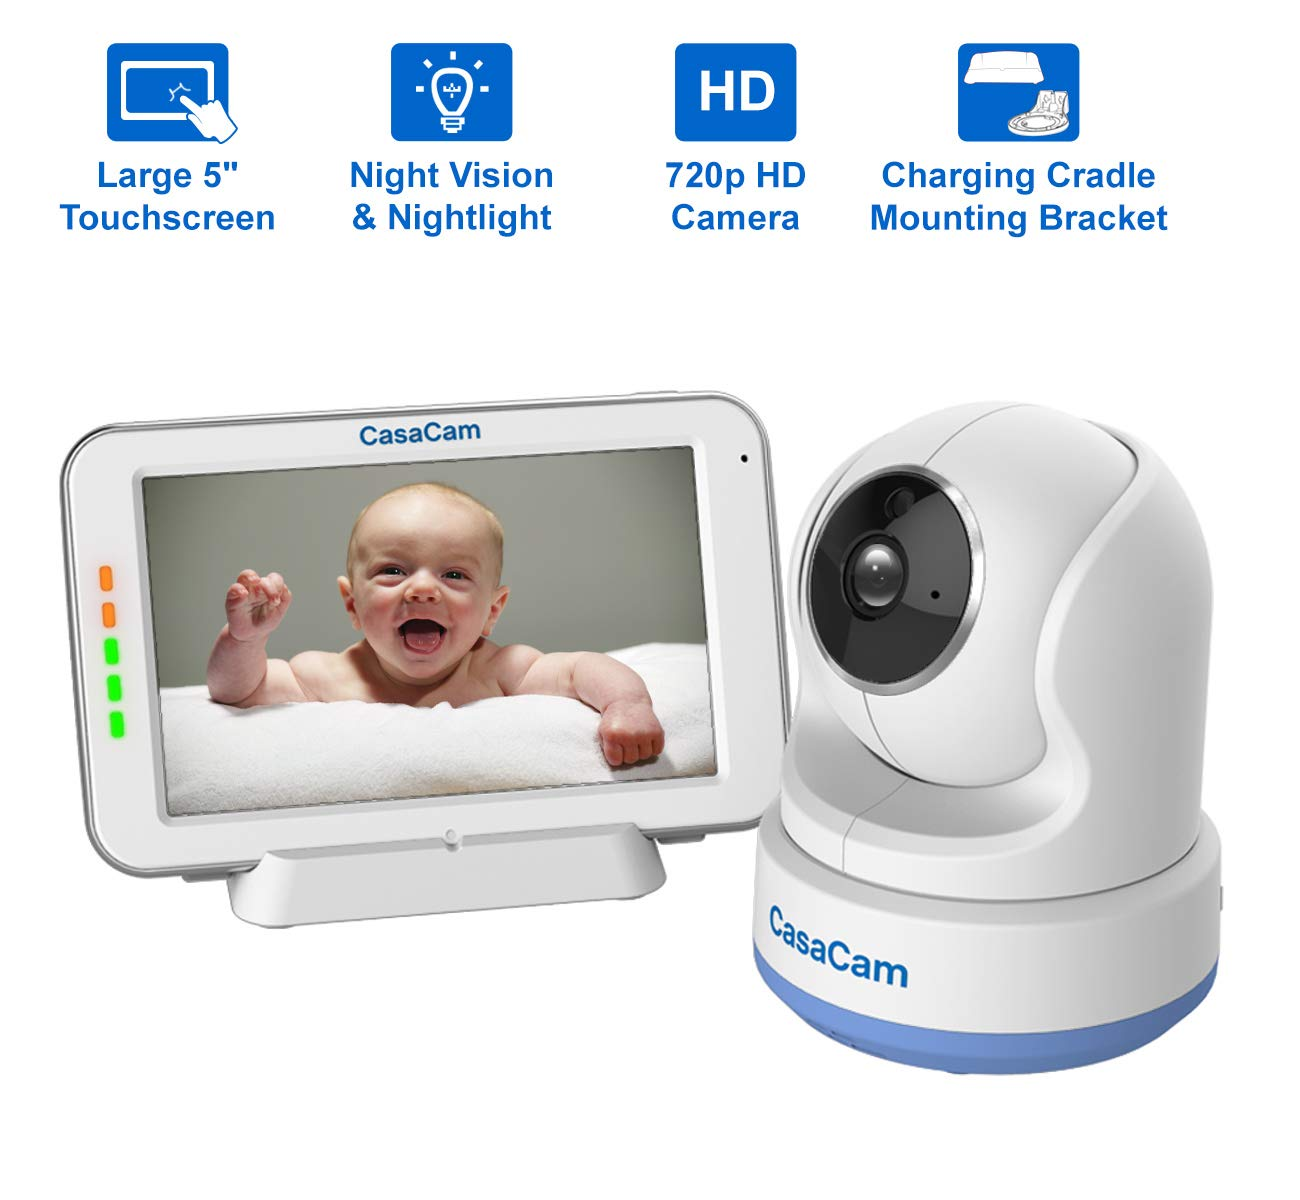 CasaCam BM200 Video Baby Monitor with 5 Touchscreen and HD Pan Tilt Camera, Two Way Audio, Lullabies, Nightlight, Automatic Night Vision and Temperature Monitoring Capability